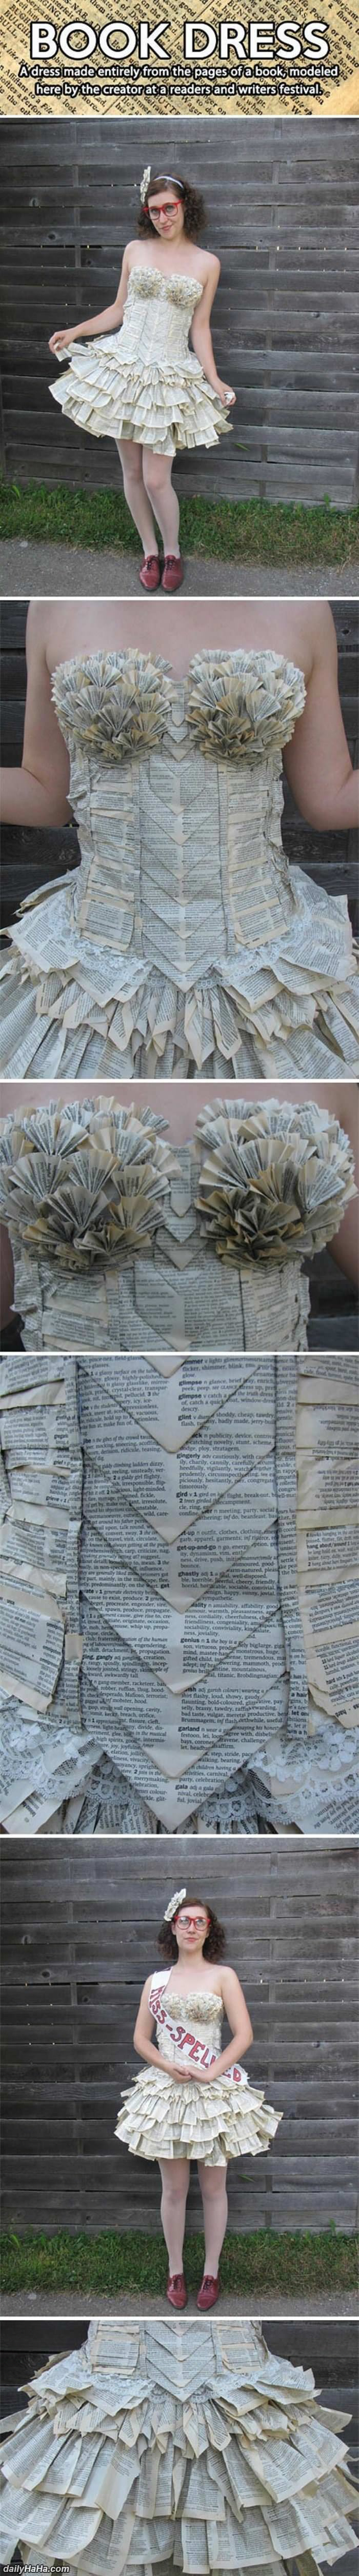 book dress funny picture